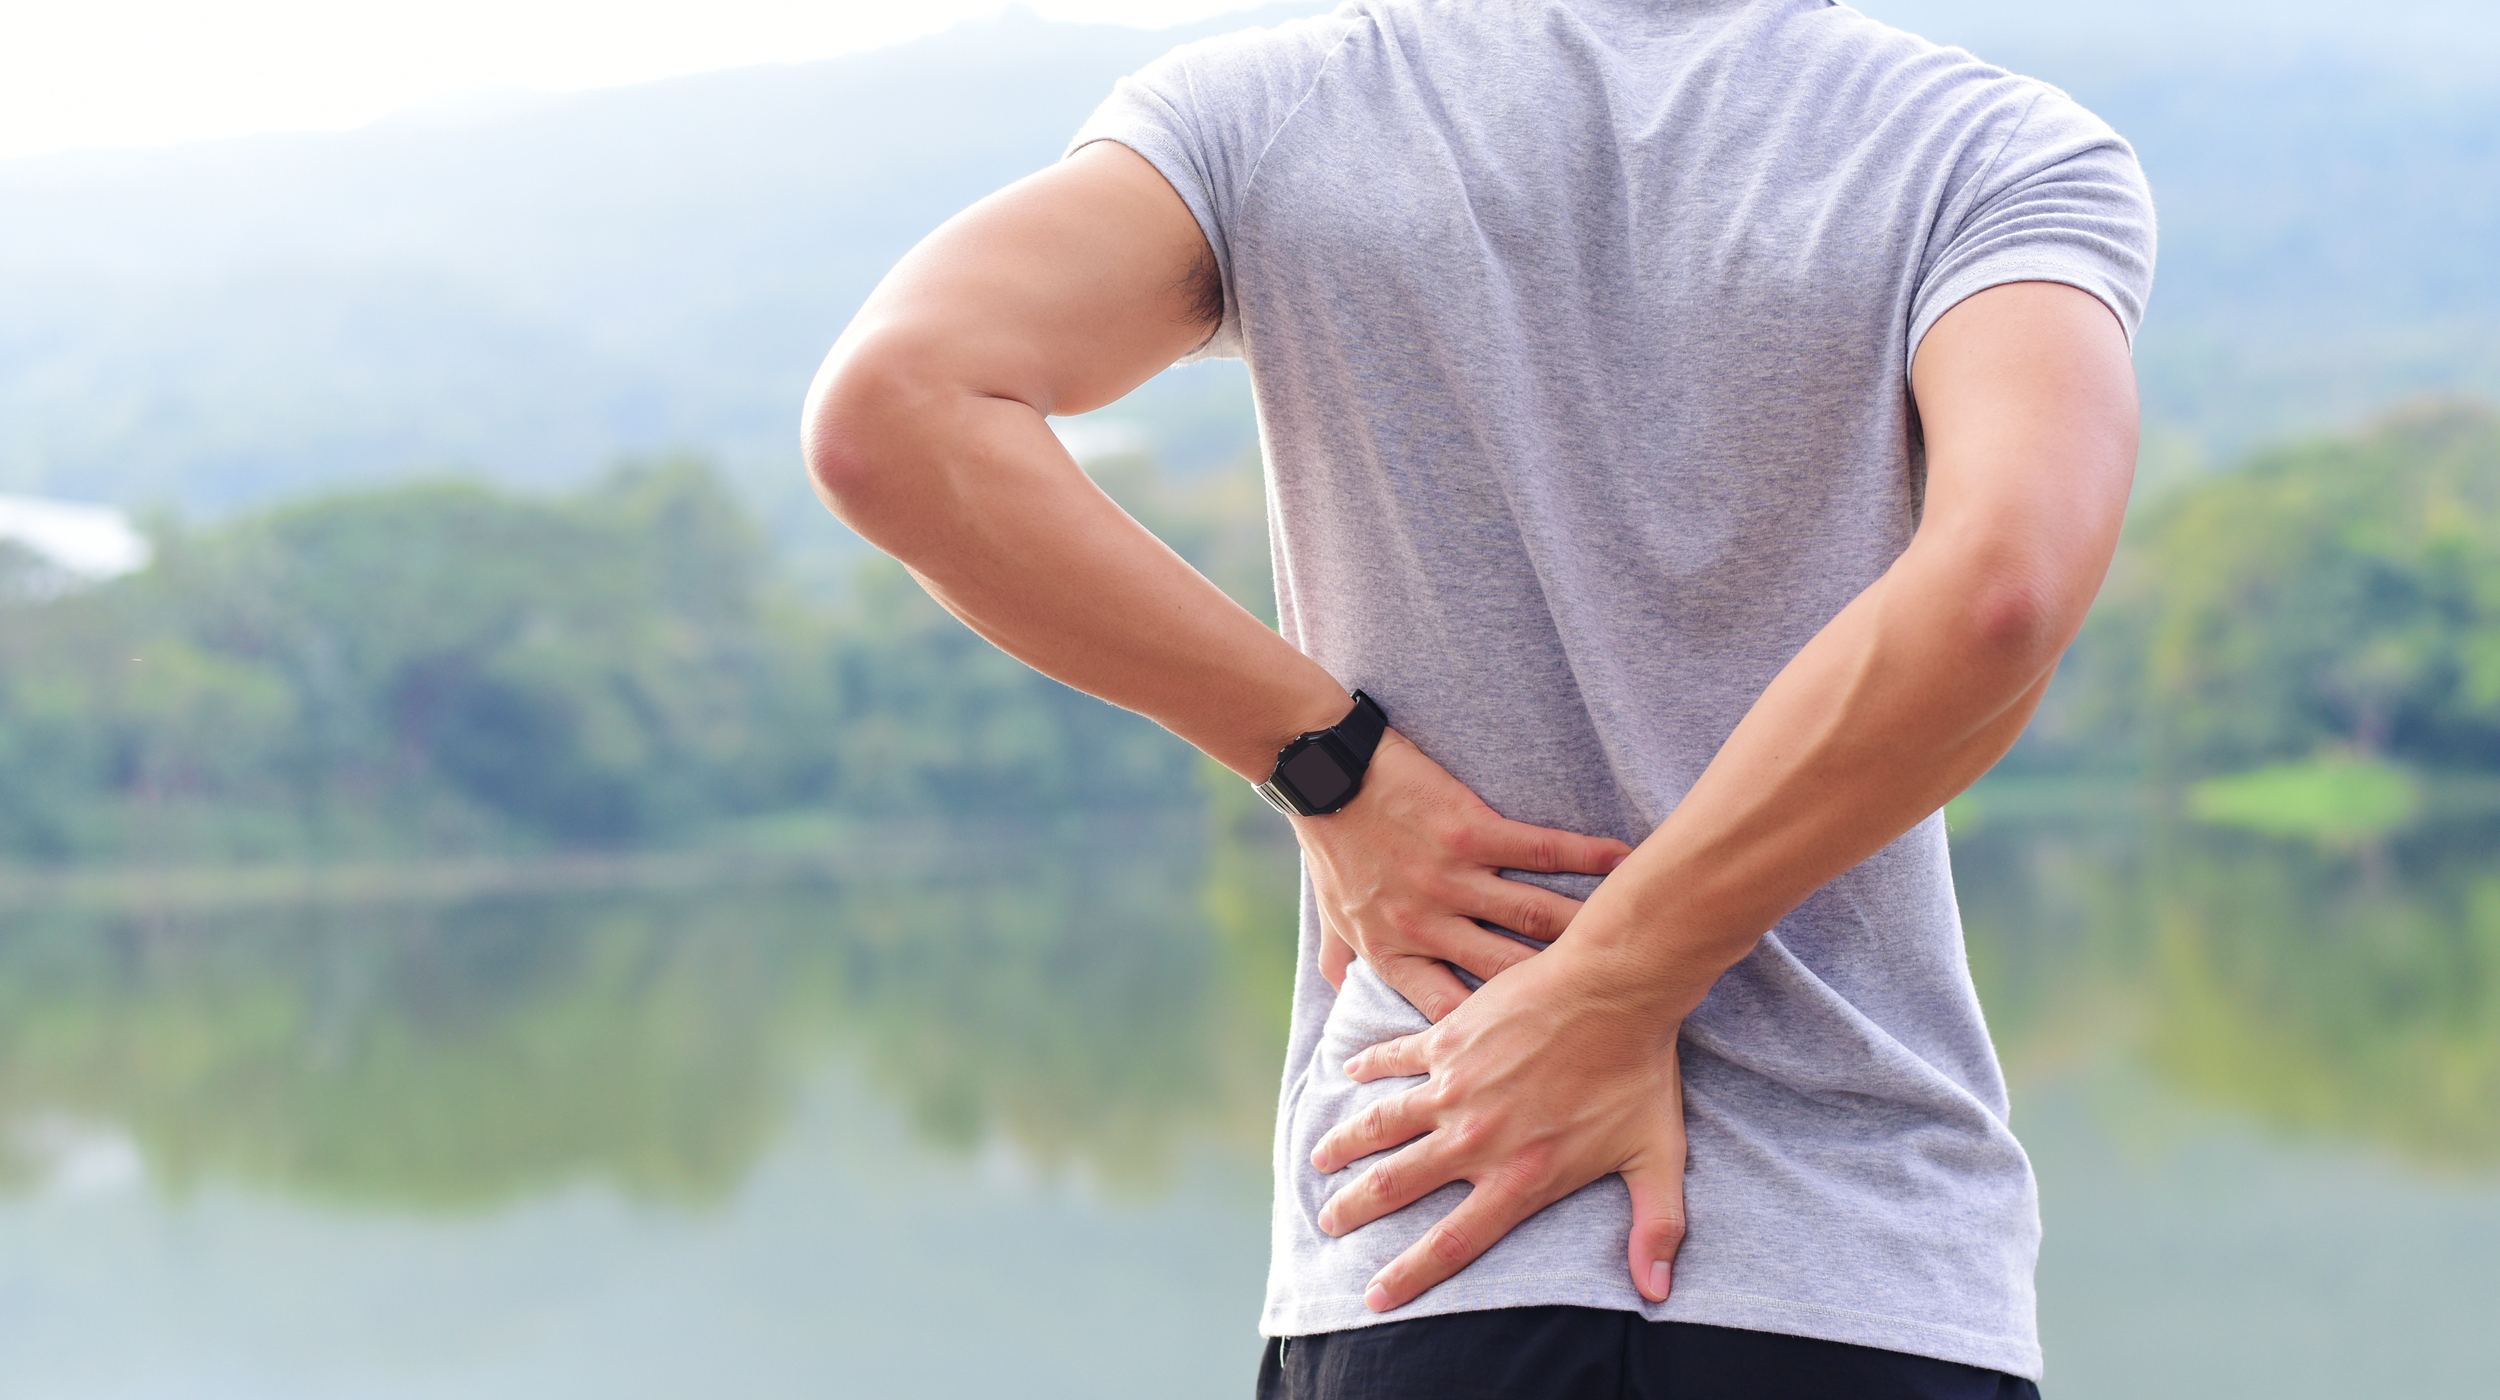 Can Diet Cause Back Pain?